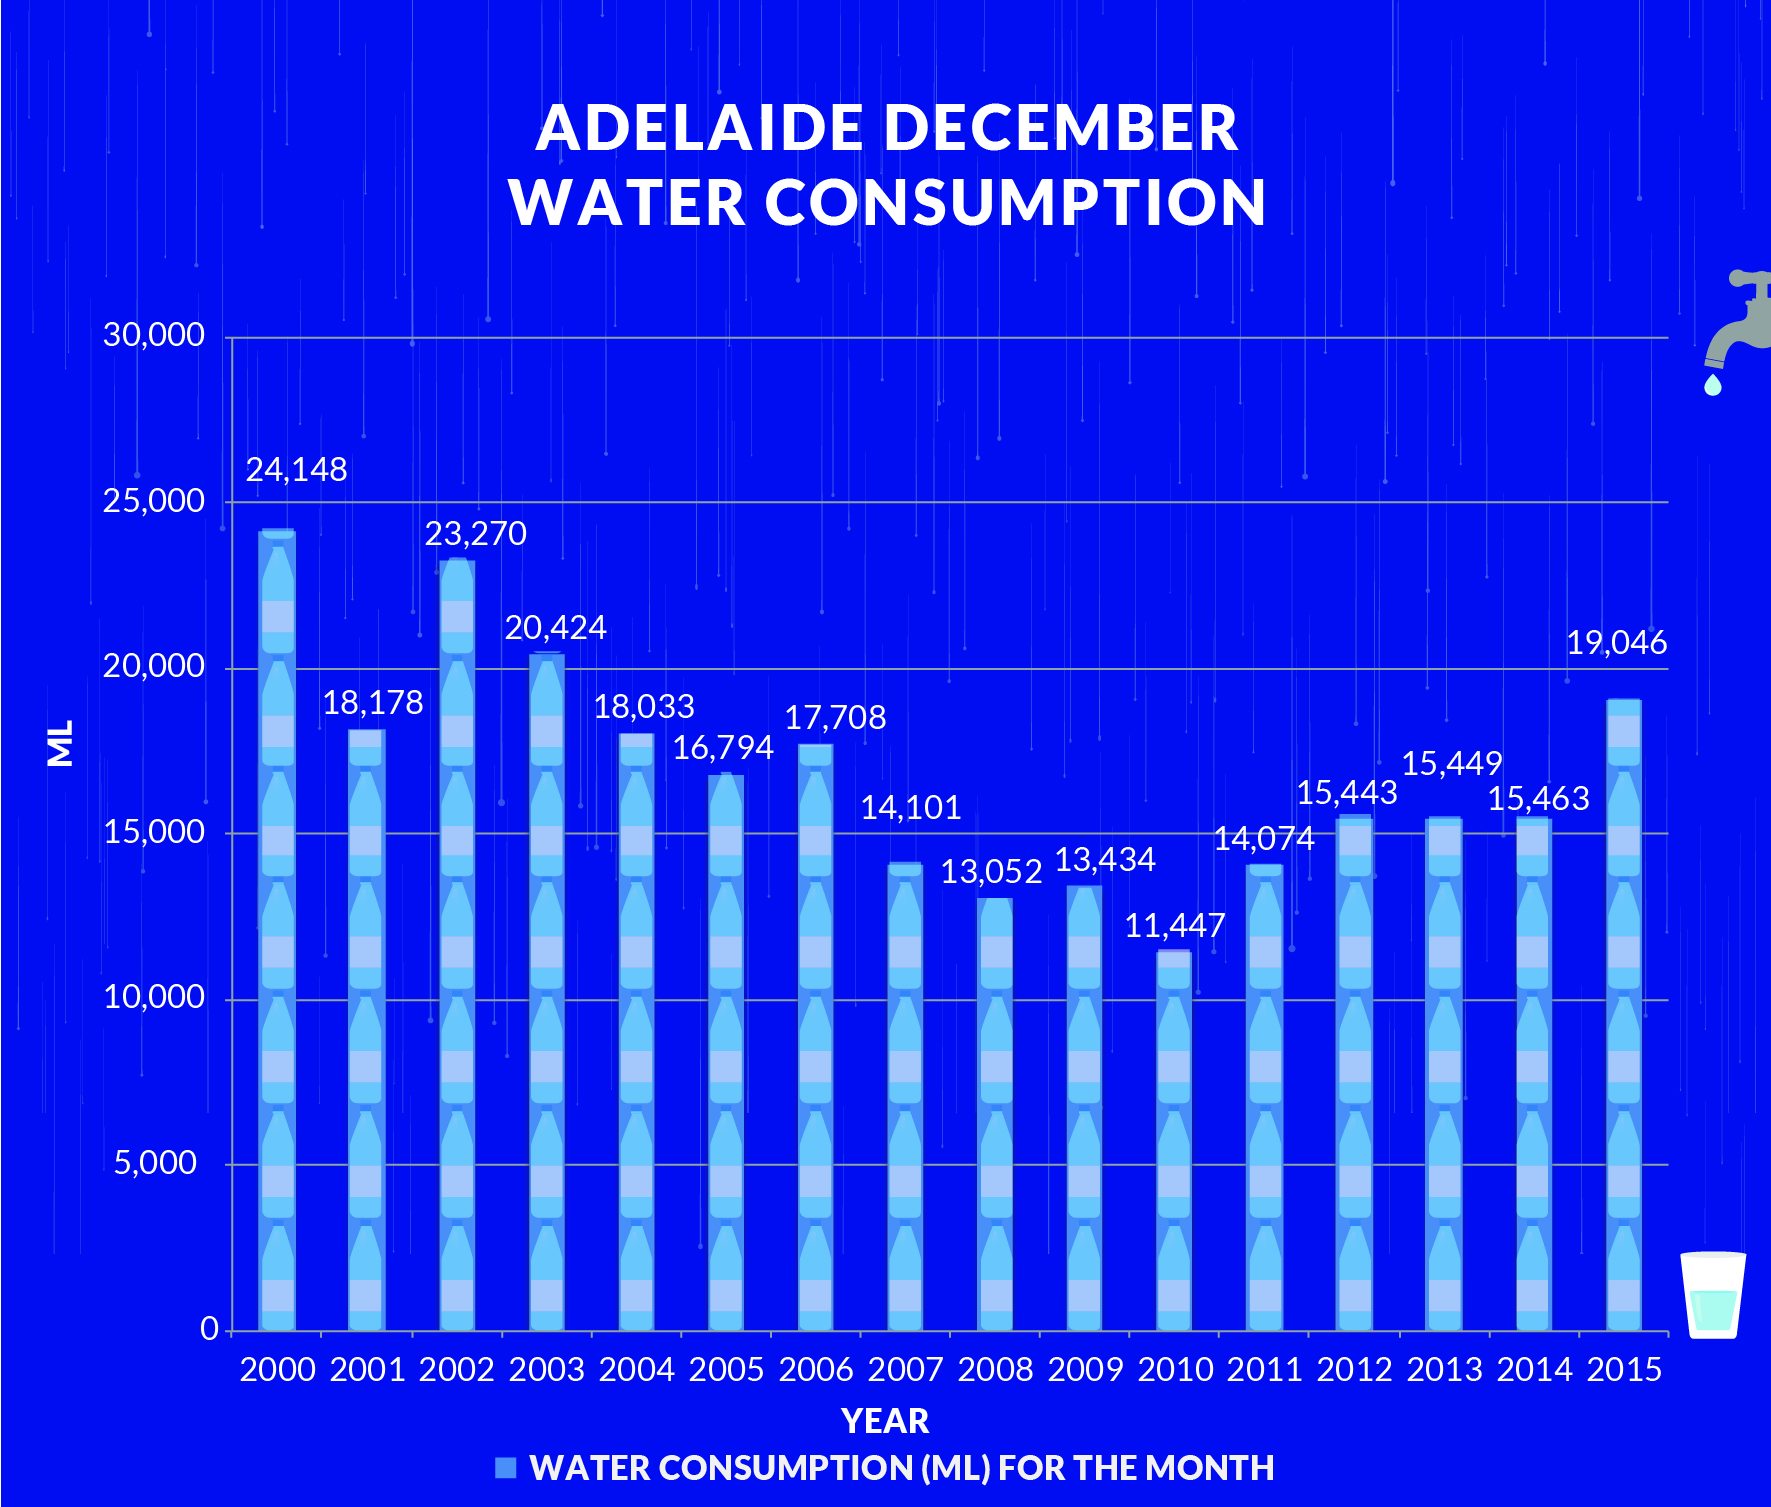 Water restrictions introduced by the State Government in resopnse to drought resulted in a dip in water use. The dryness of spring/summer this year has led to an upswing in water use. Chart by Leah Zahorujko/InDaily using SA Water data.